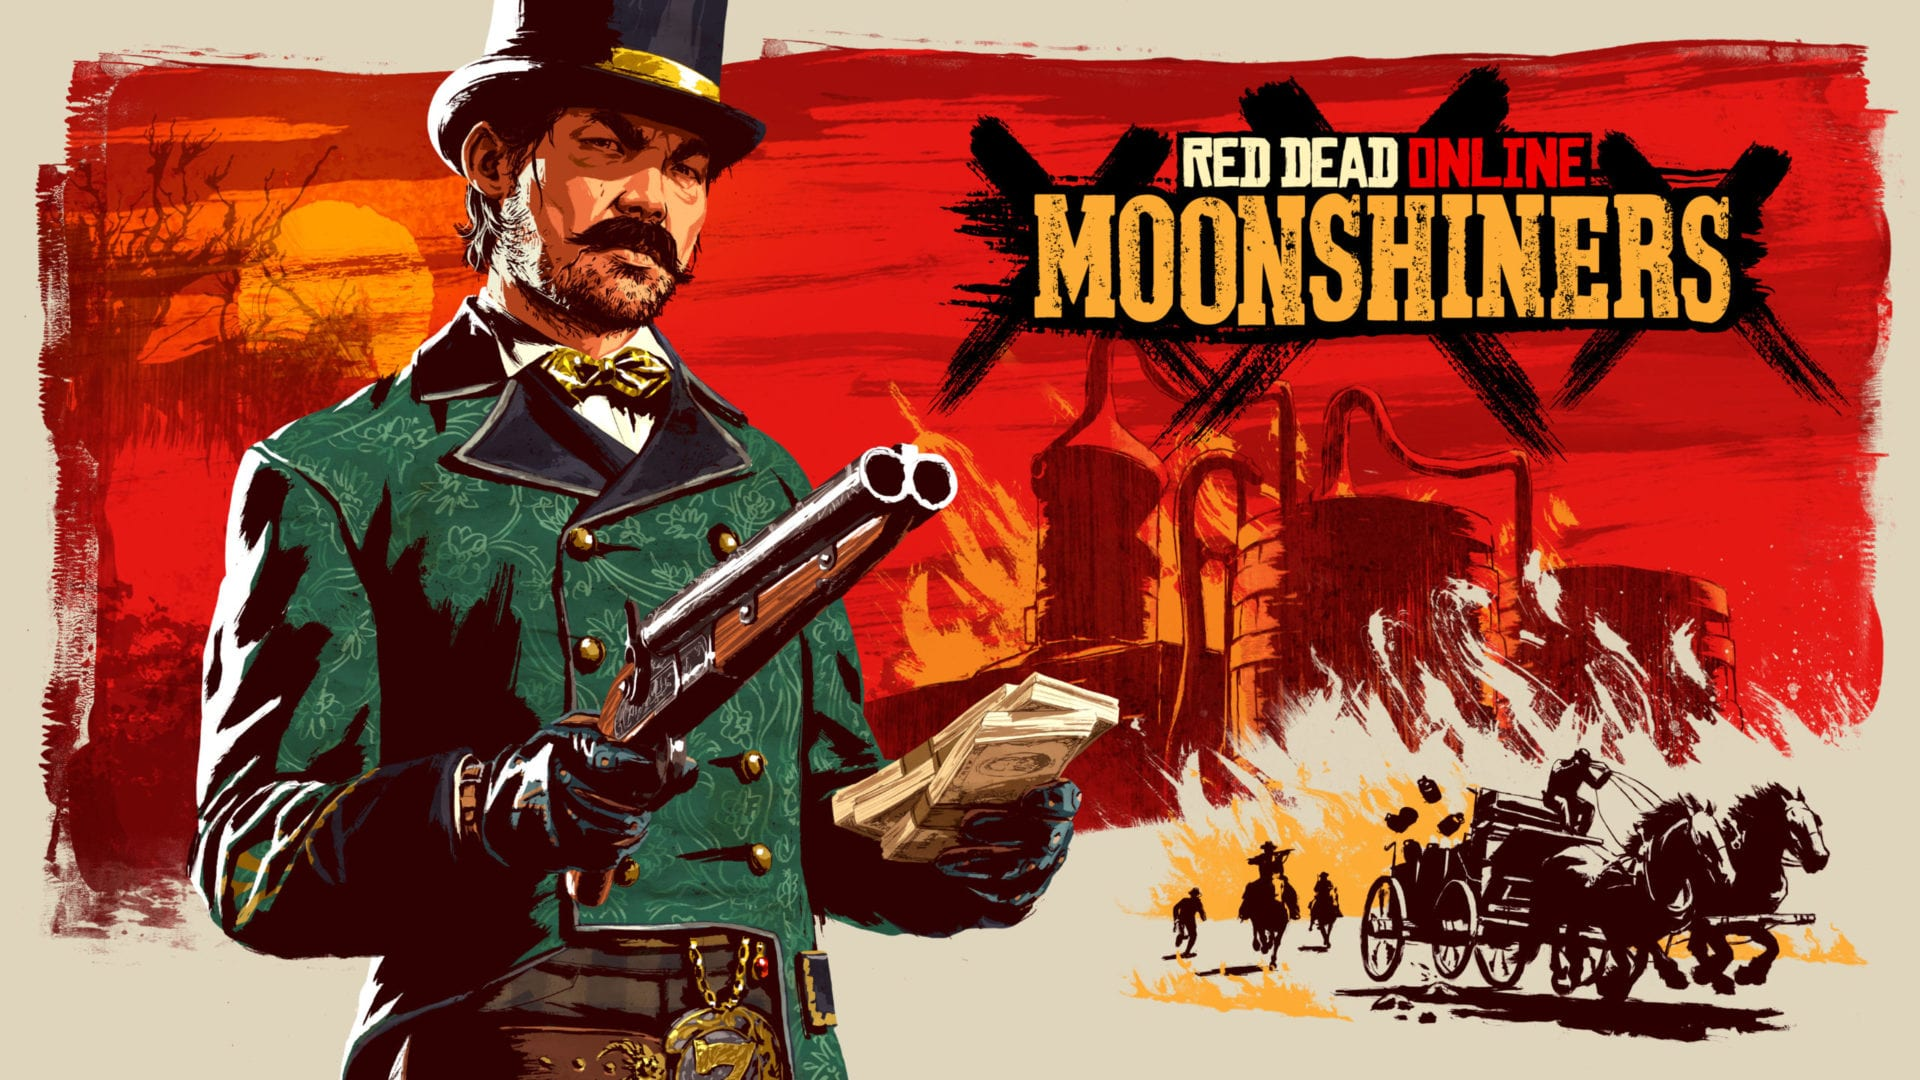 moonshiners, frontier pursuit, red dead